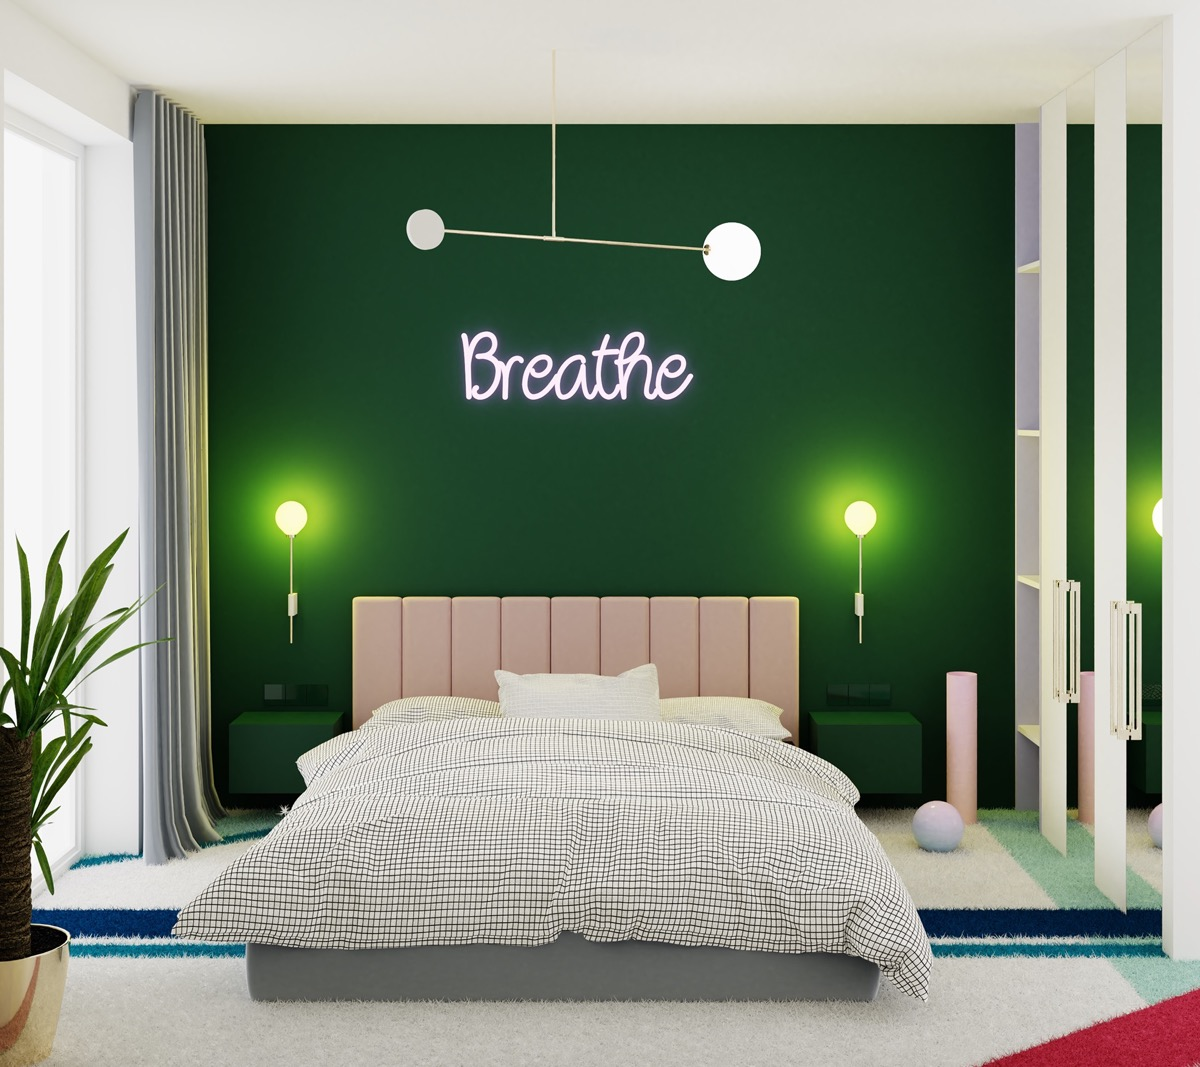 4 Green Bedrooms With Tips And Accessories To Help You Design Yours